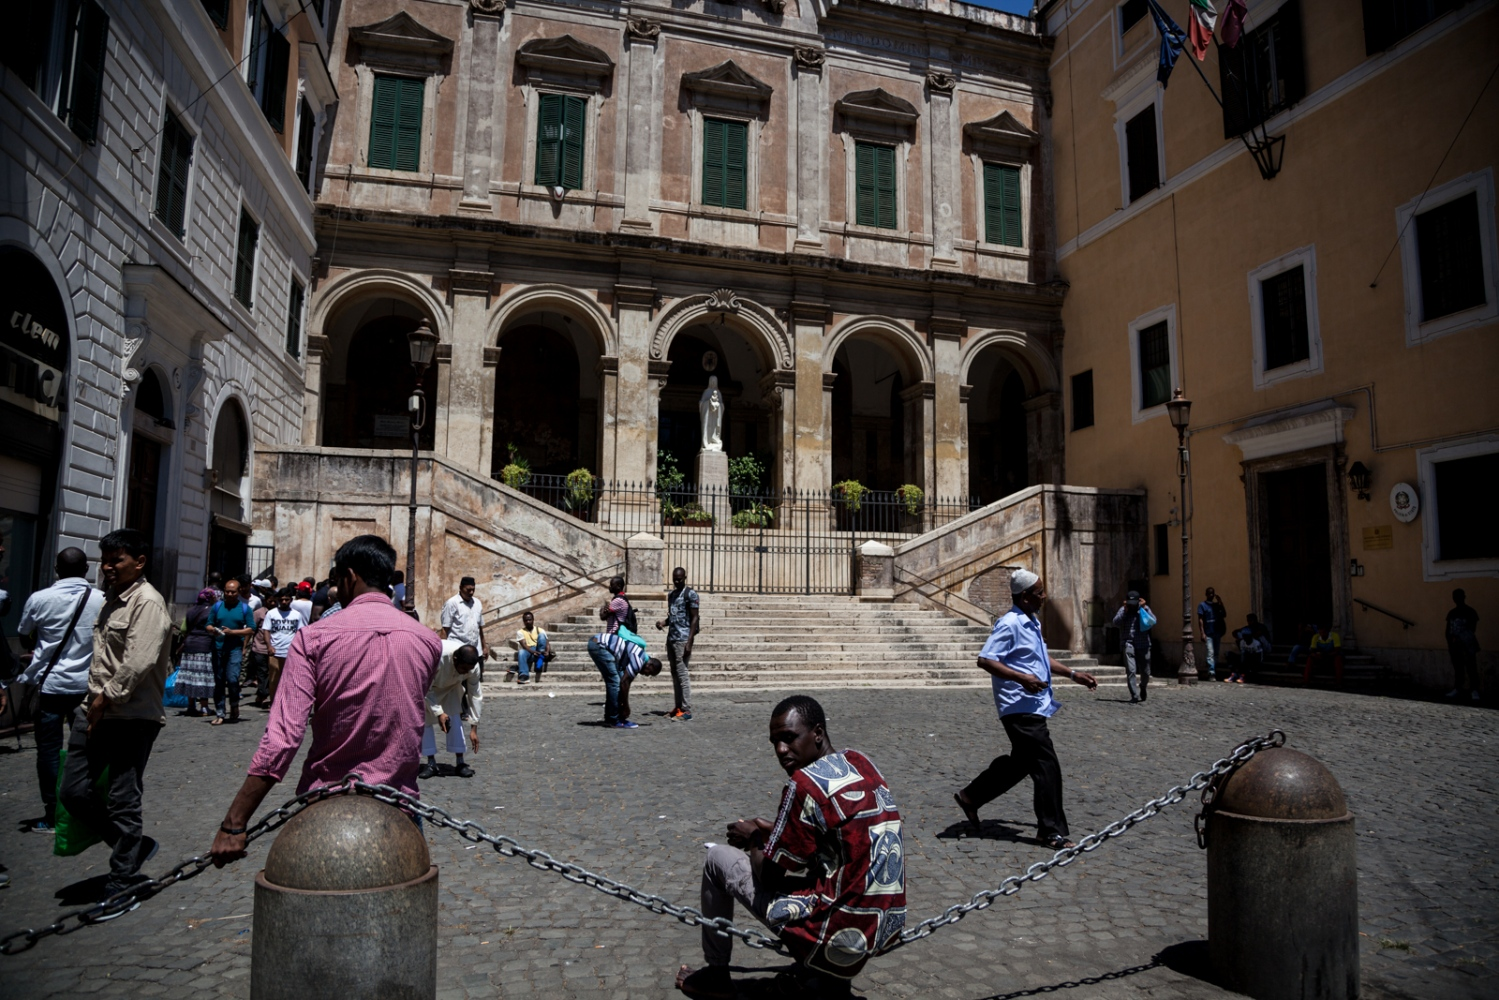 July 07, 2017 - After the afternoon Friday prayer, men leave a small Mosque next to a Catholic Church (Chiesa di Sant'Eusebio) in Piazza Vittorio, the most multicultural area in downtown Rome.